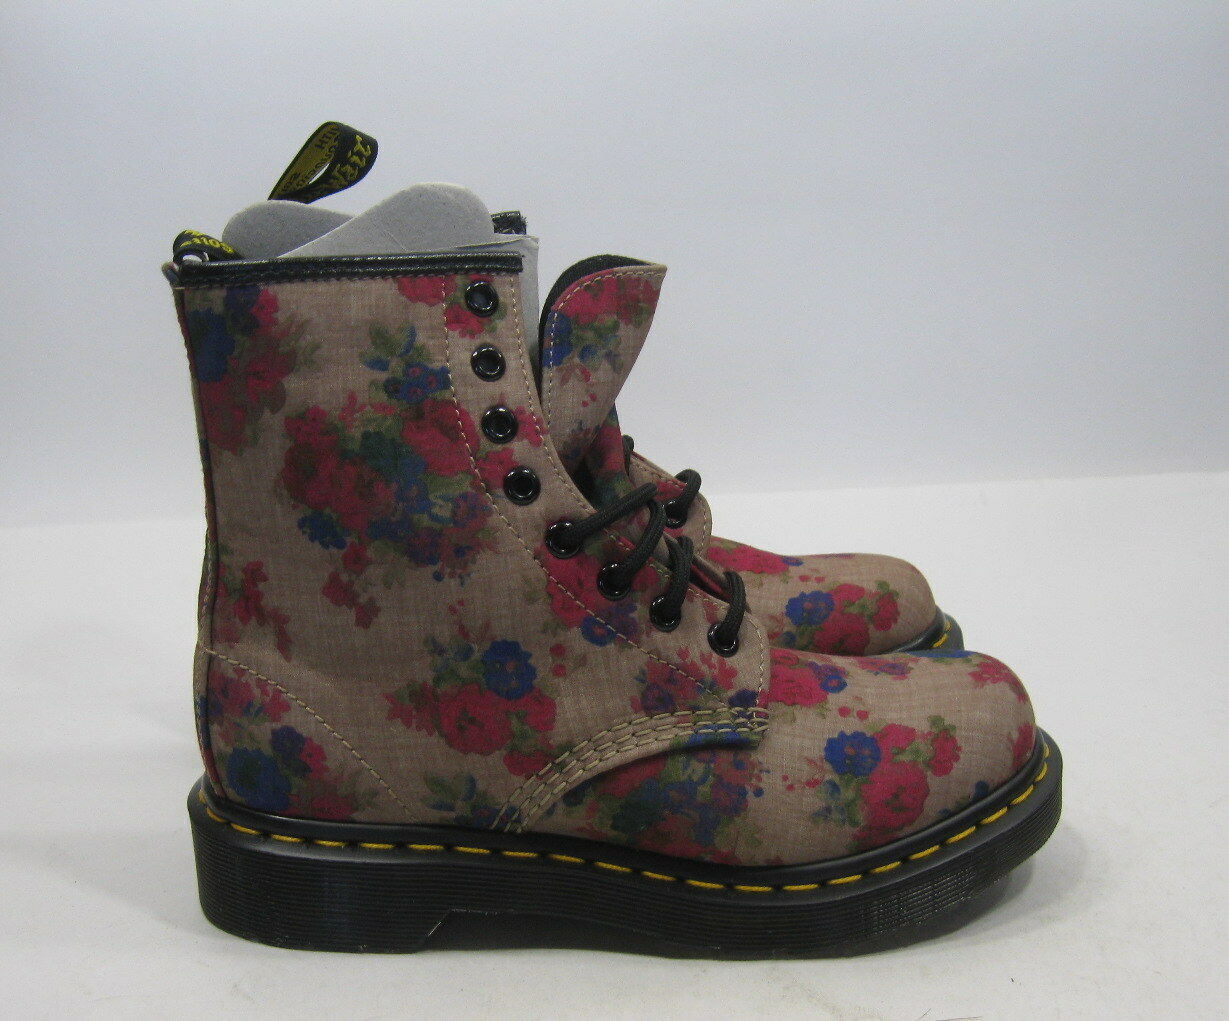 New Womens Dr Martens Castel 14723260 Vintage Bouquet    hiking boot Size 6 f10f30